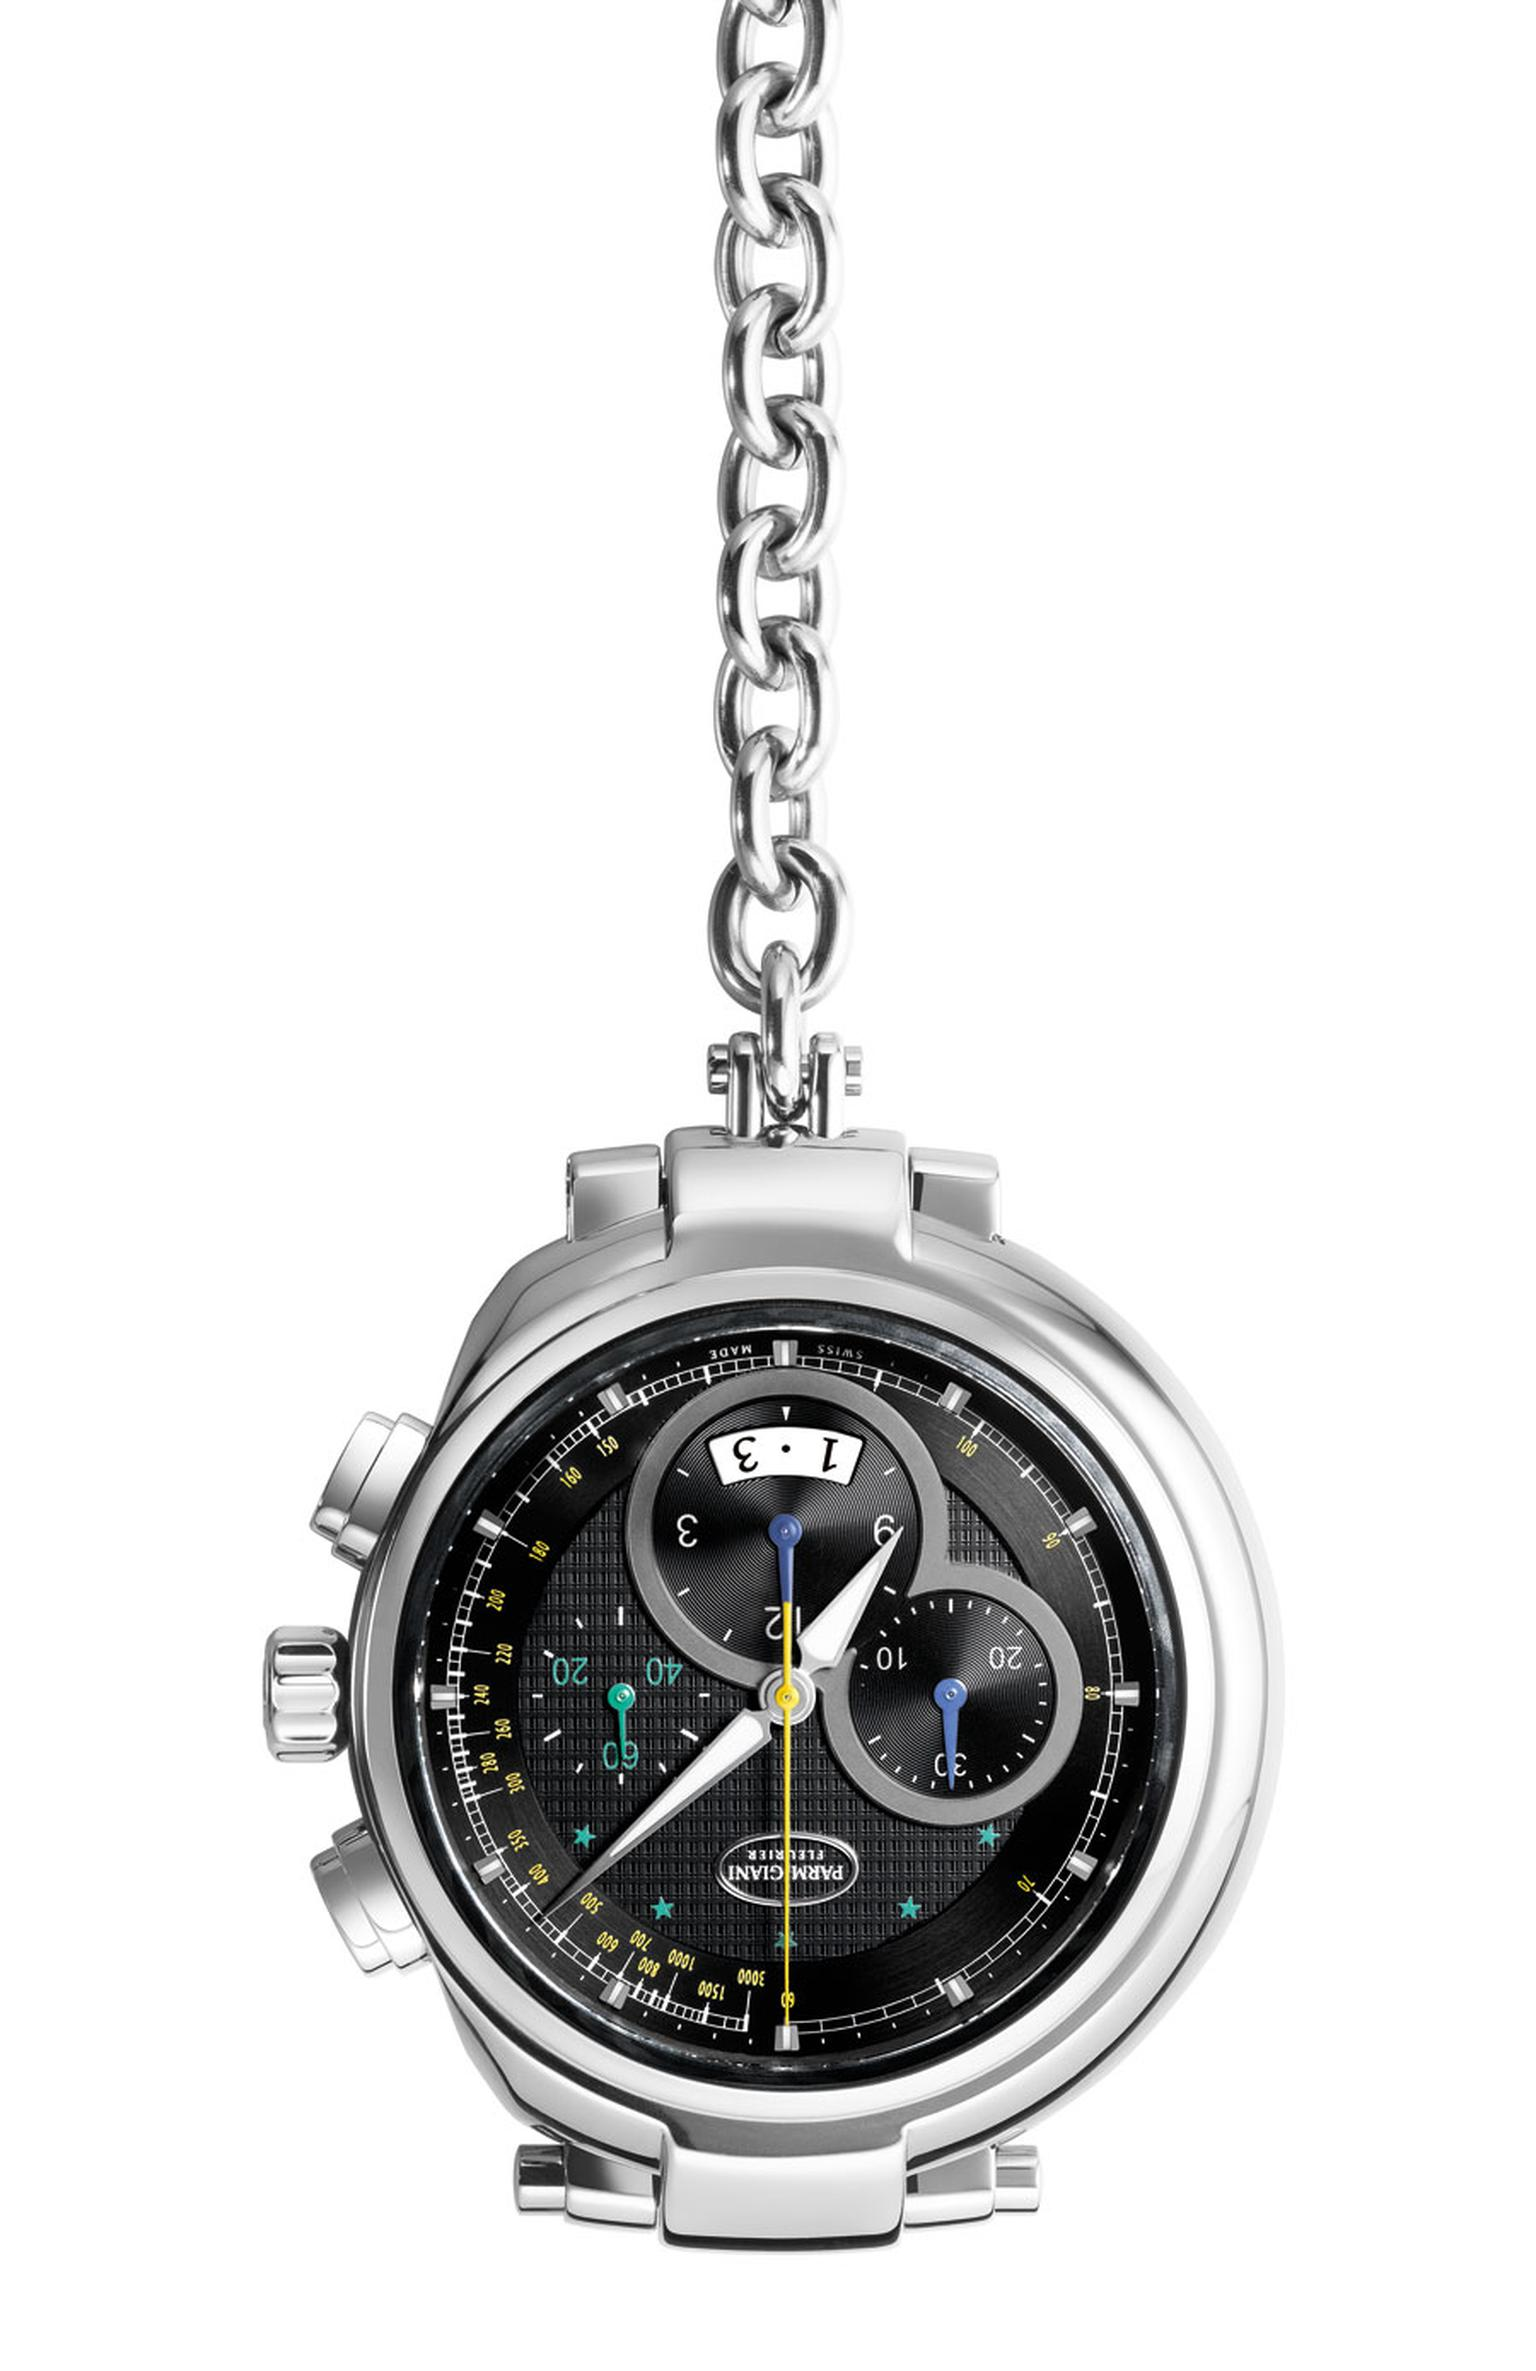 Parmagiani-Transforma-Chronographe-CBF---pocket